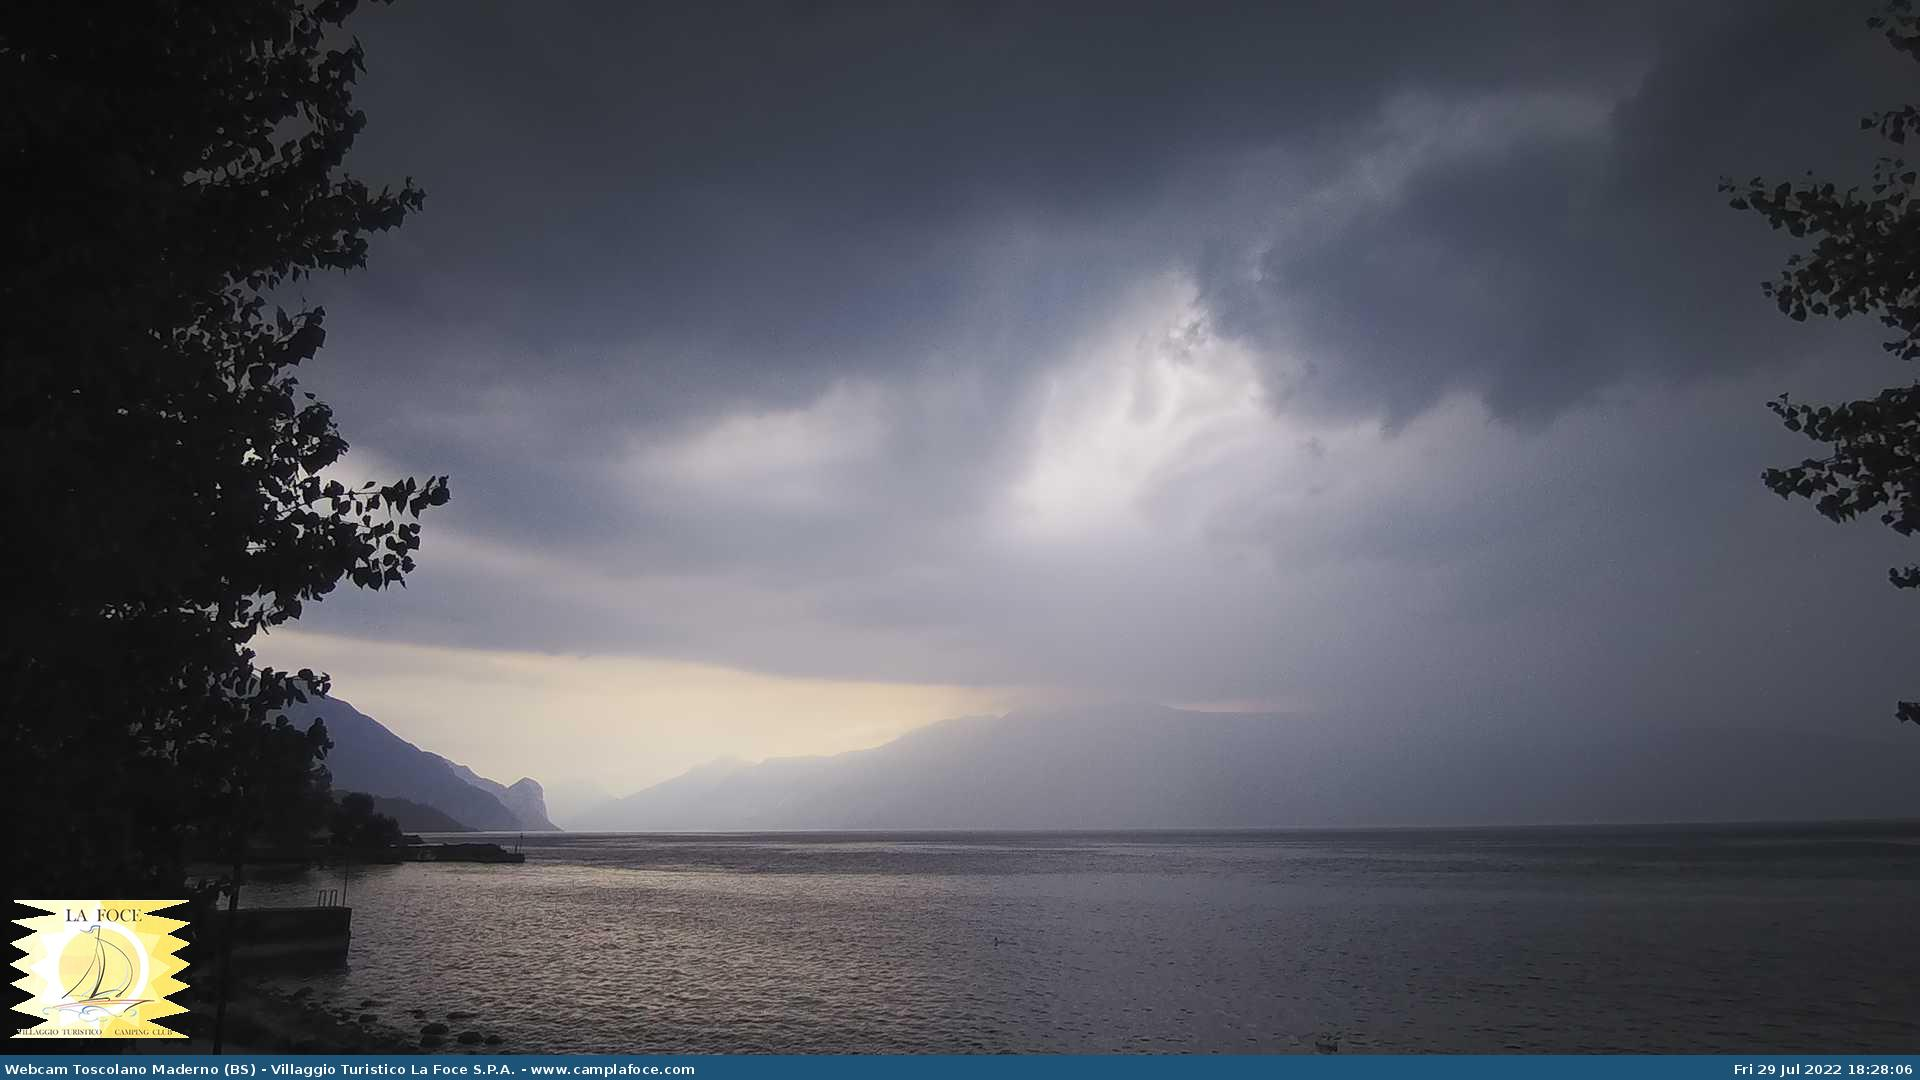 Webcam Toscolano Maderno